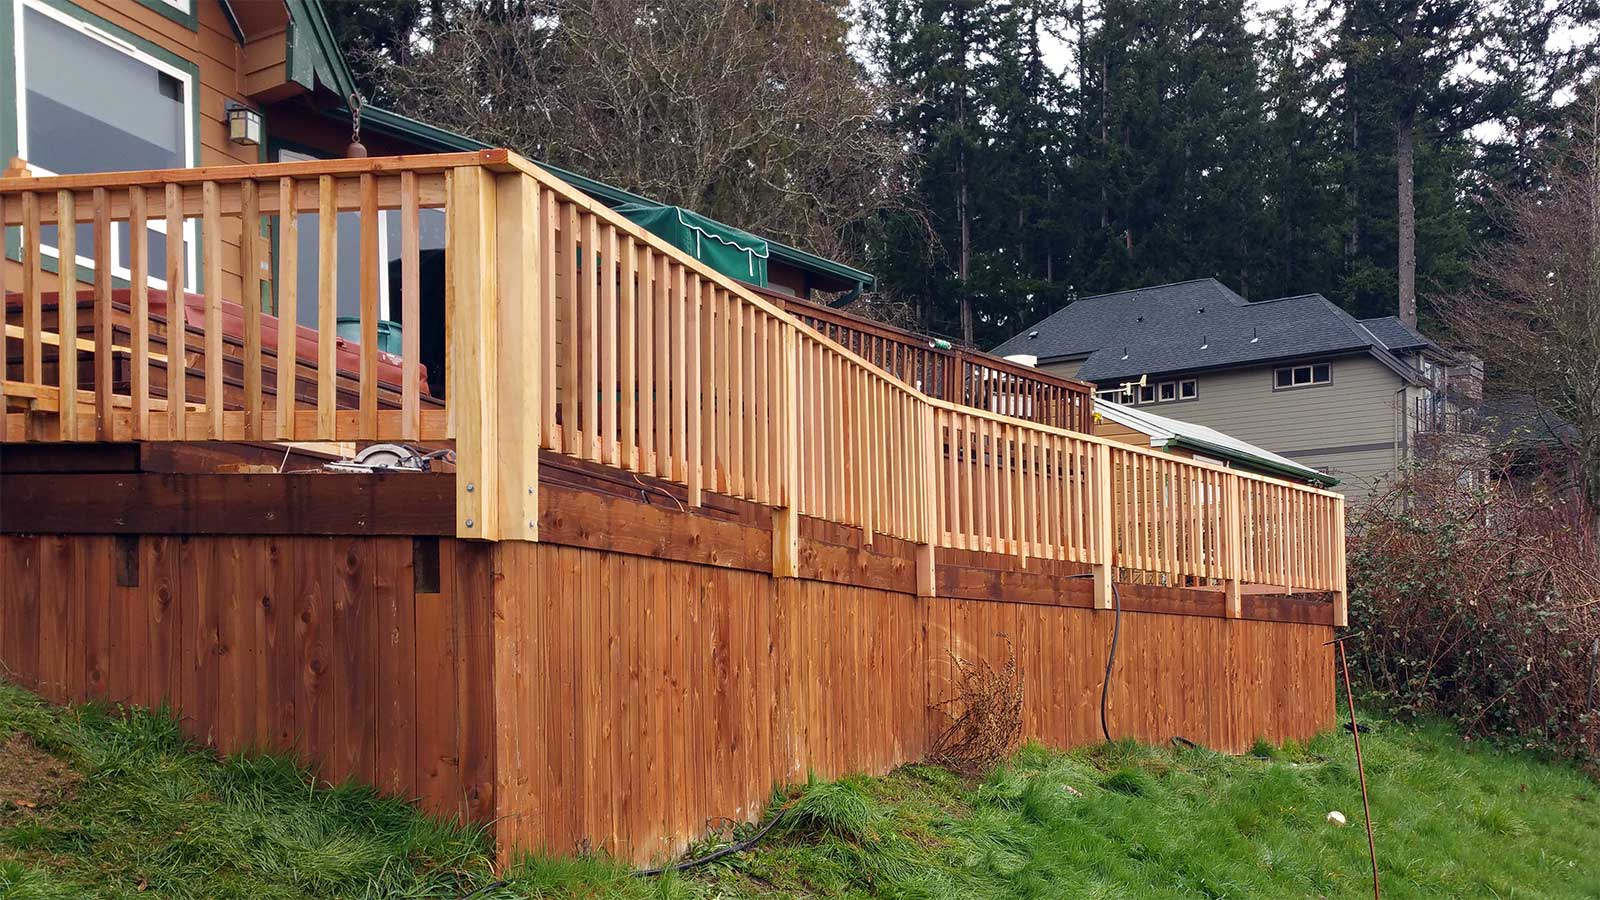 AJB Landscaping & Fence installed the railing for this existing deck in Yelm.